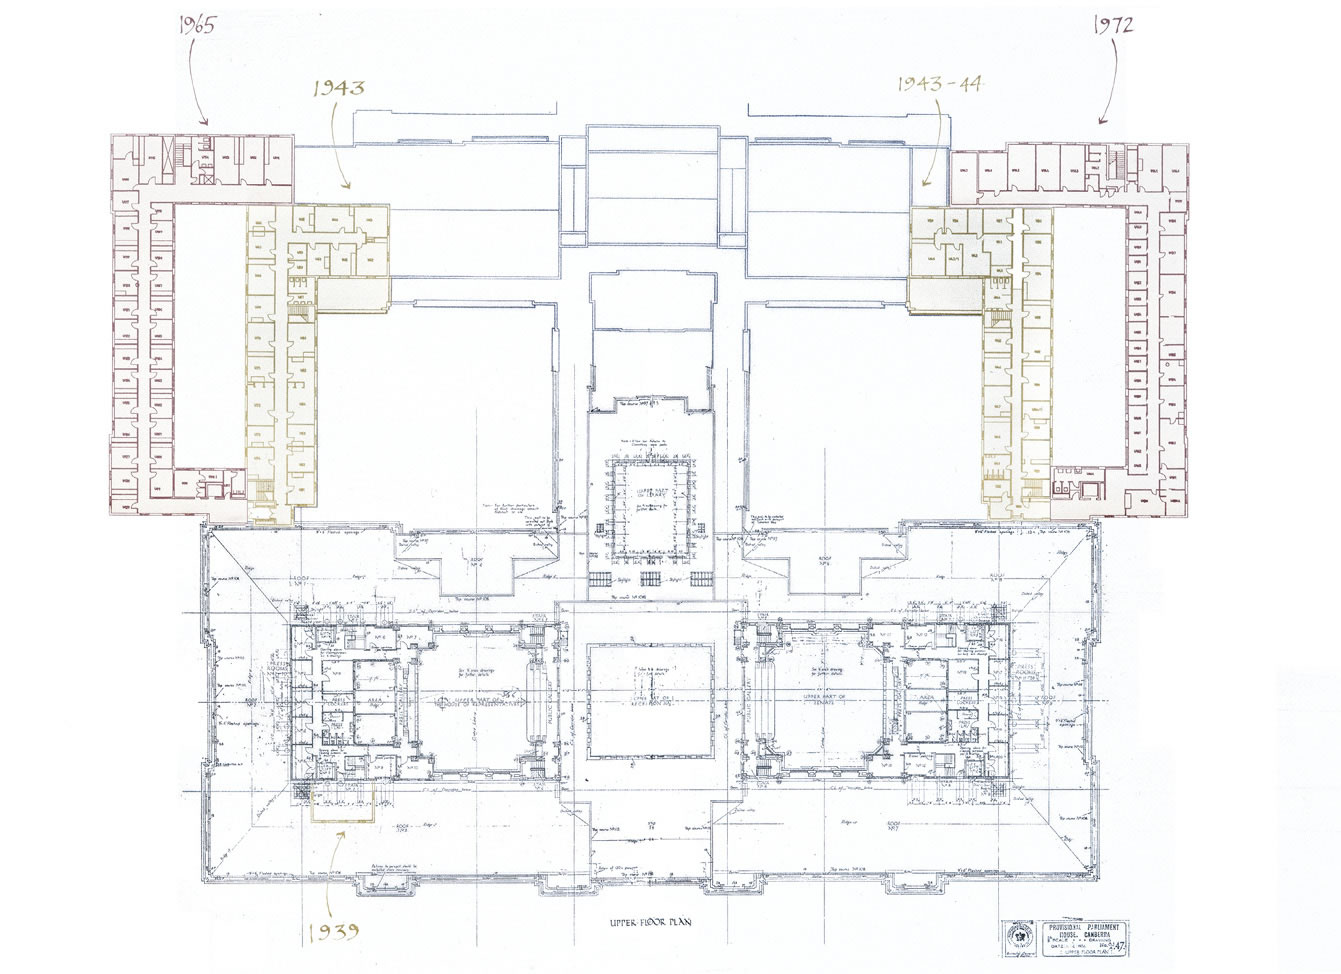 Plan drawing of the upper floor showing additions in 1939, 1943, 1943-44, 1965 and 1972.